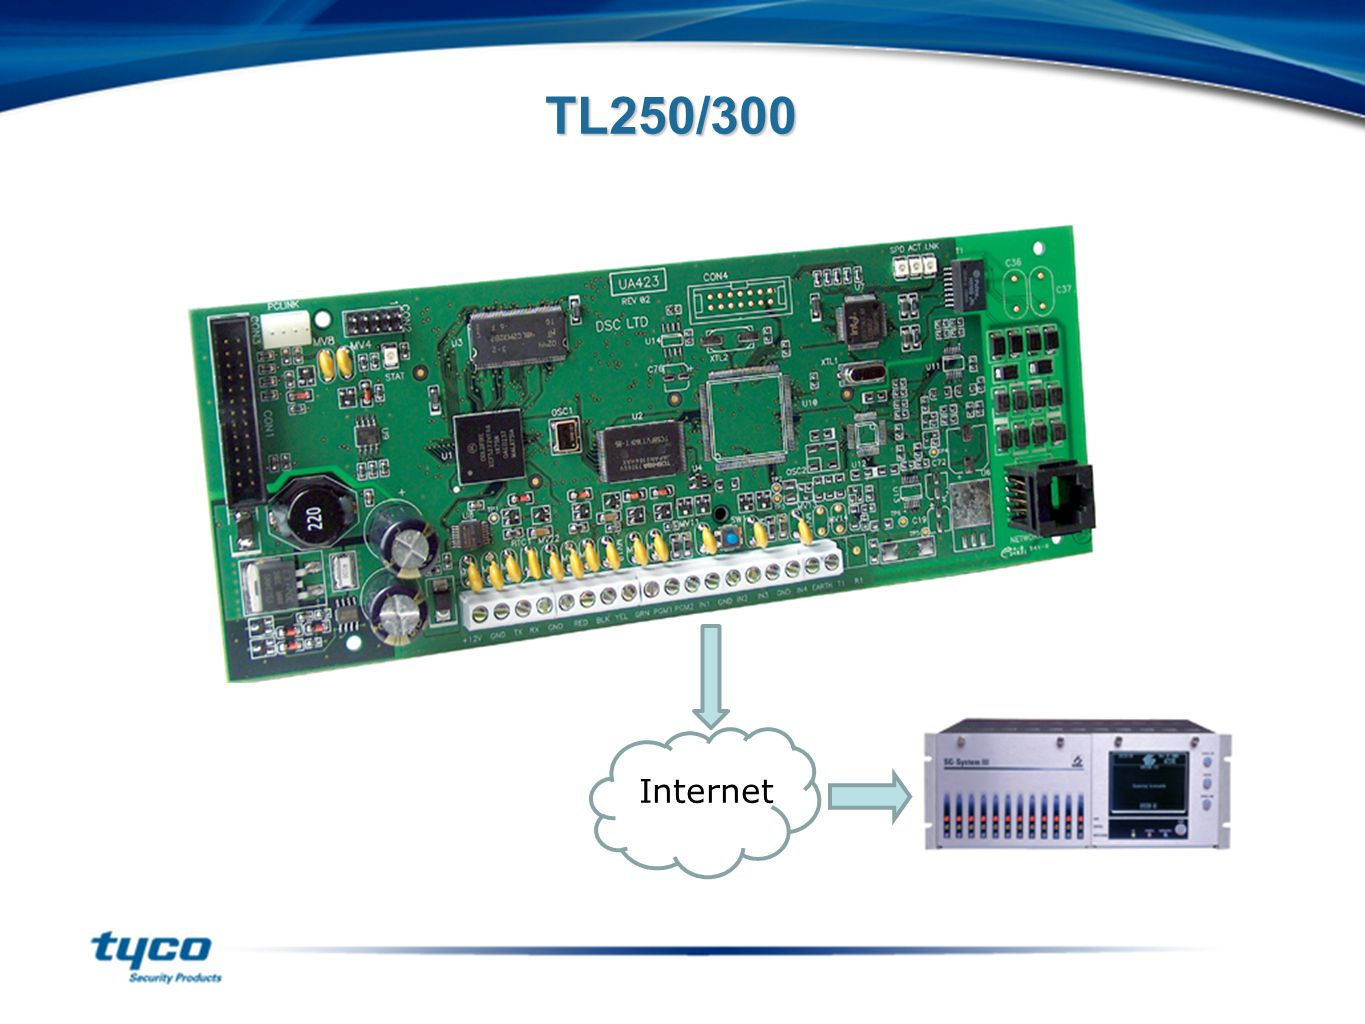 G Welcome To Our Dsc Impassa Ip Communicators Road Show Ppt 5010 Wiring Diagram Tl250 300 Internet